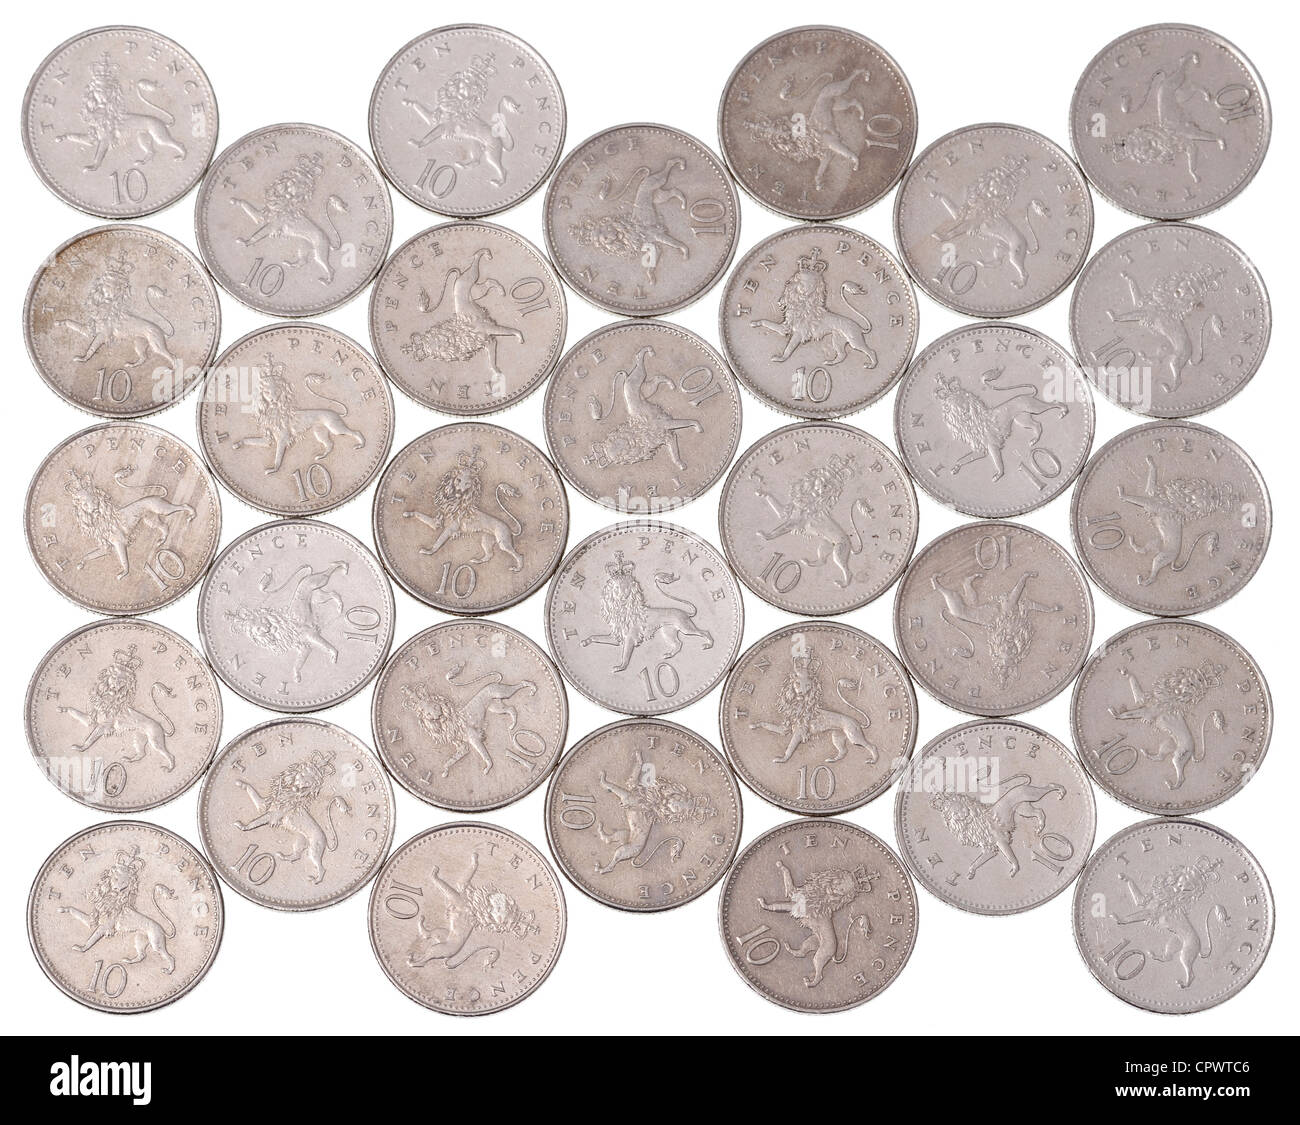 UK 10p coins - Stock Image